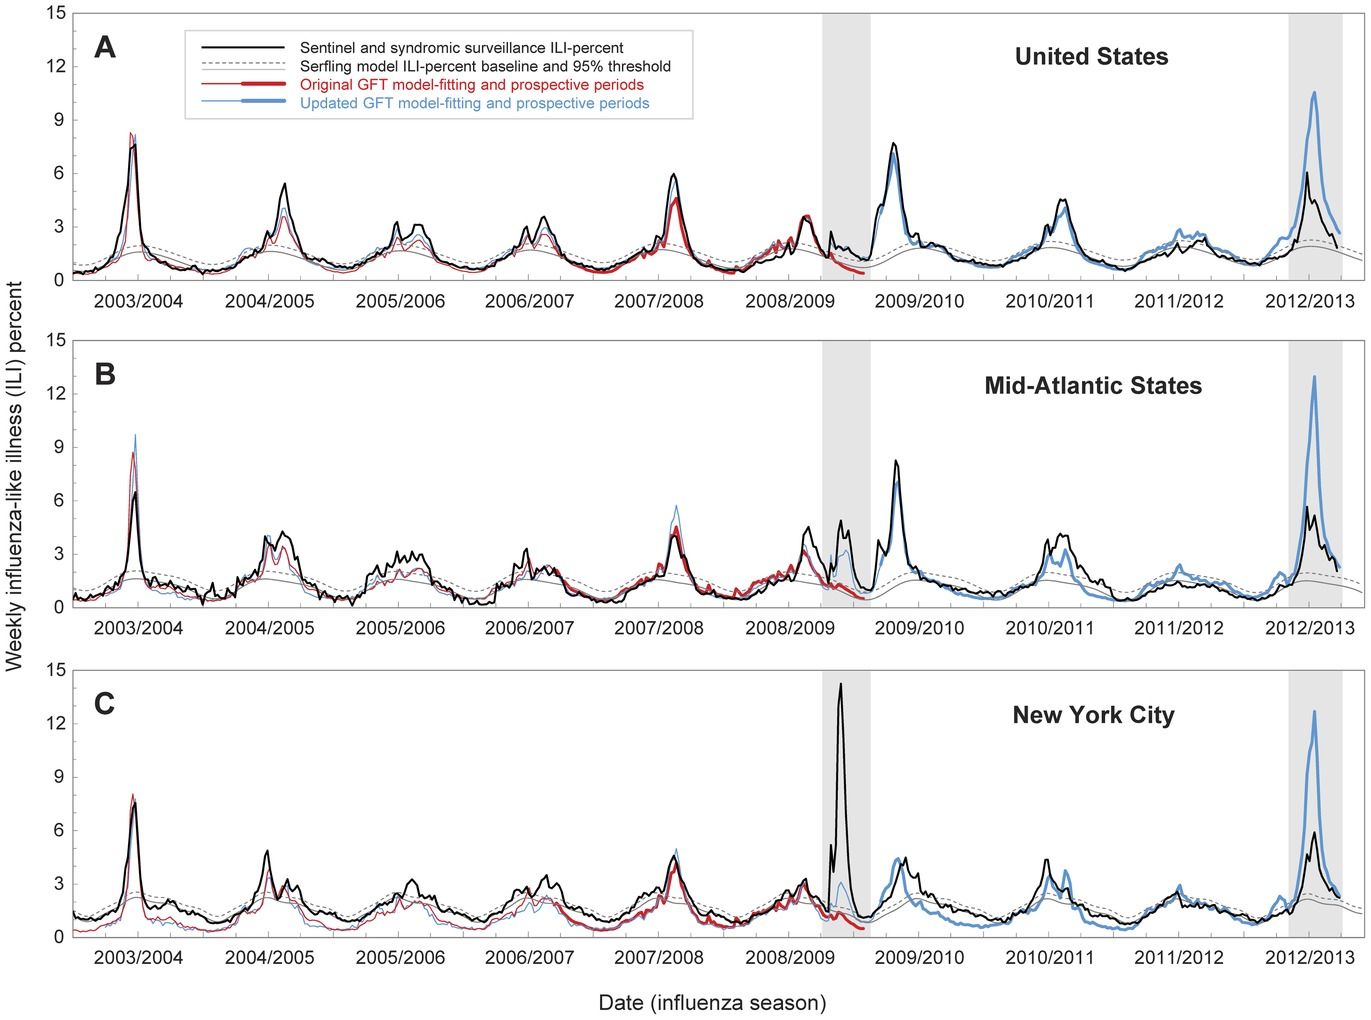 big data google flu Big data showcases such as google flu trends failed to deliver good predictions in recent years, overstating the flu outbreaks by a factor of two.